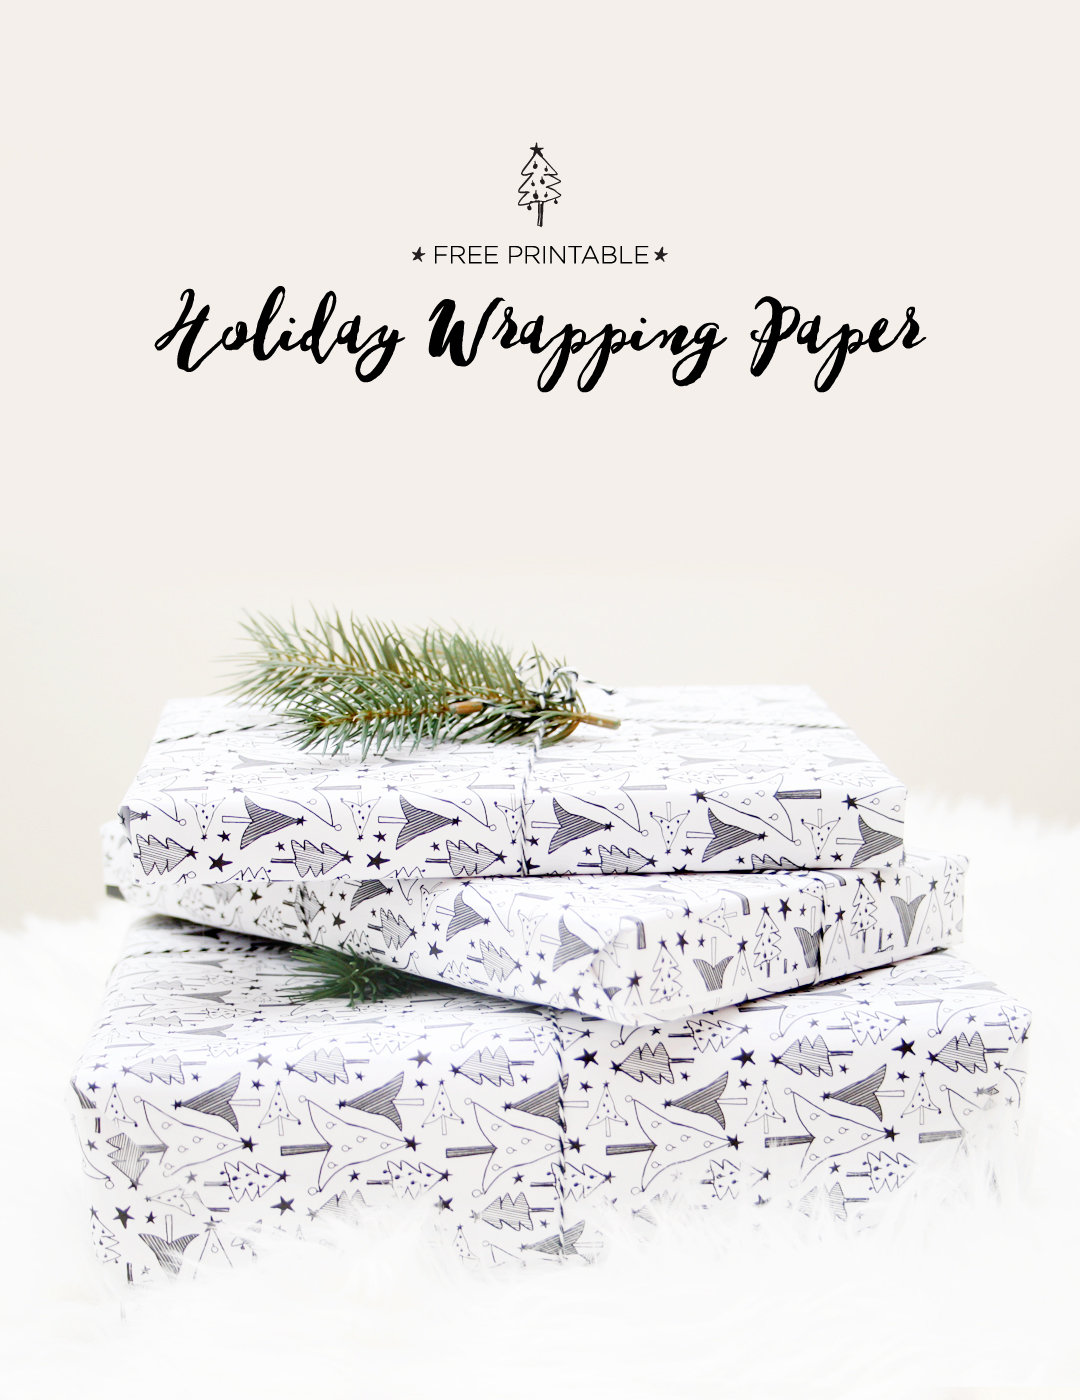 Free Printable: Holiday Wrapping Paper